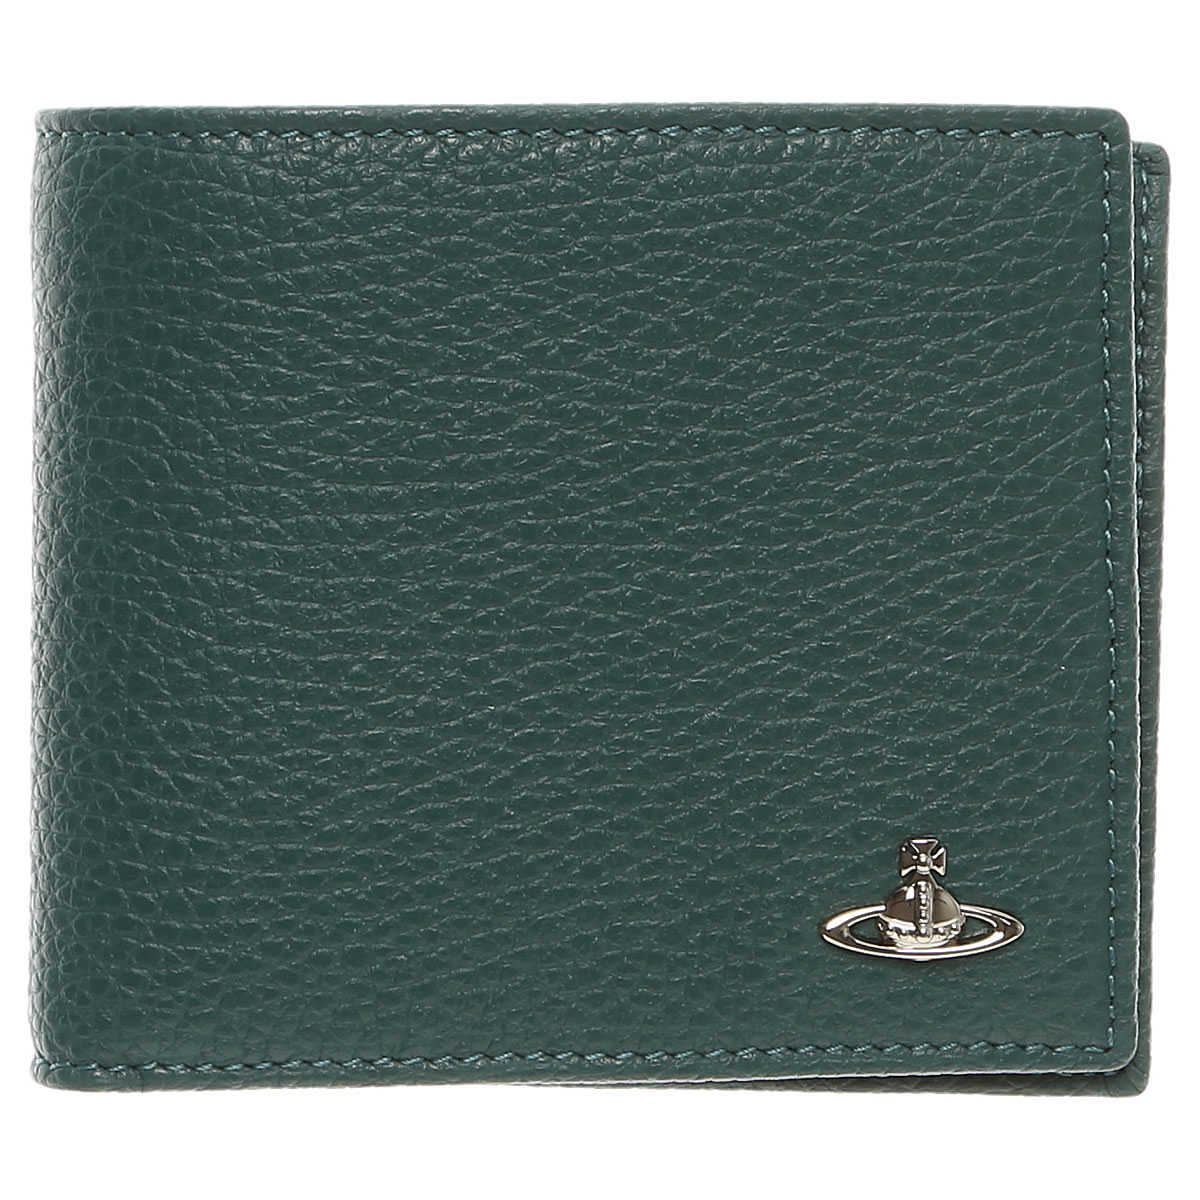 Vivienne Westwood Wallet for Men On Sale Dark Green - GOOFASH